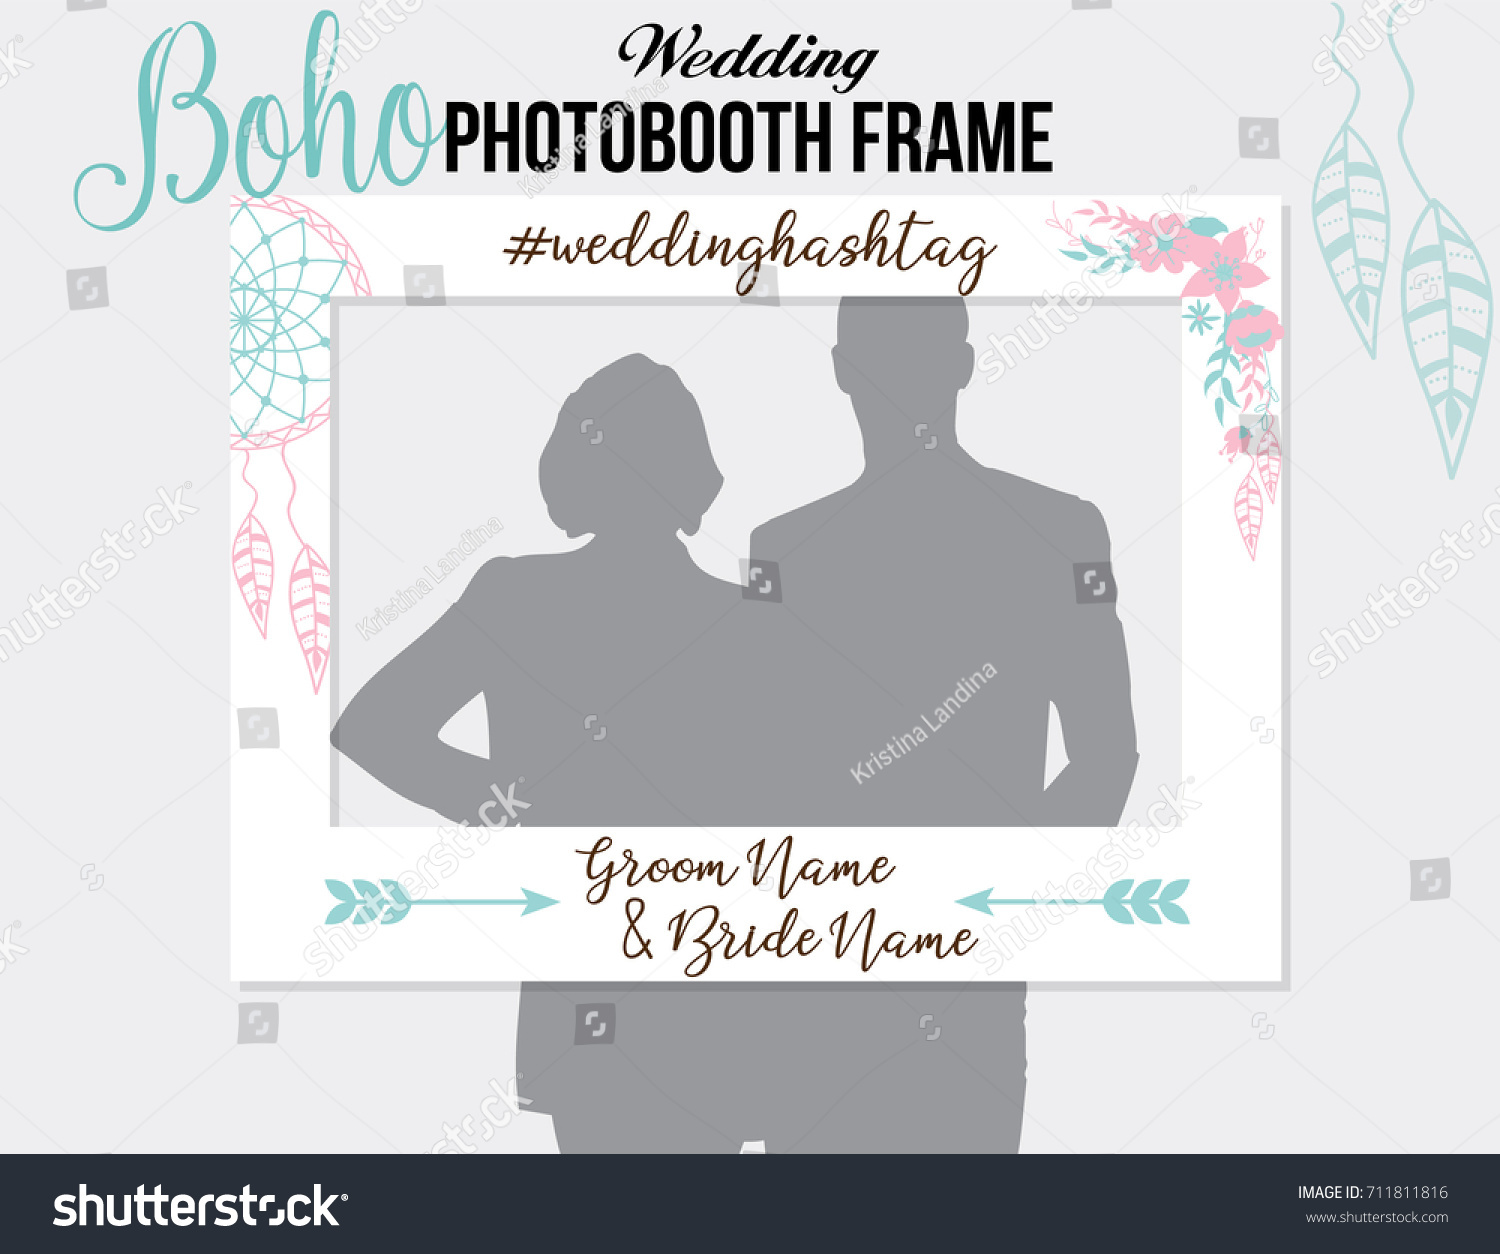 Boho Style Photo Booth Wedding Frame With Hashtag For Sharing The Blue Pink Vector Template Dreamcatcher And Flowers